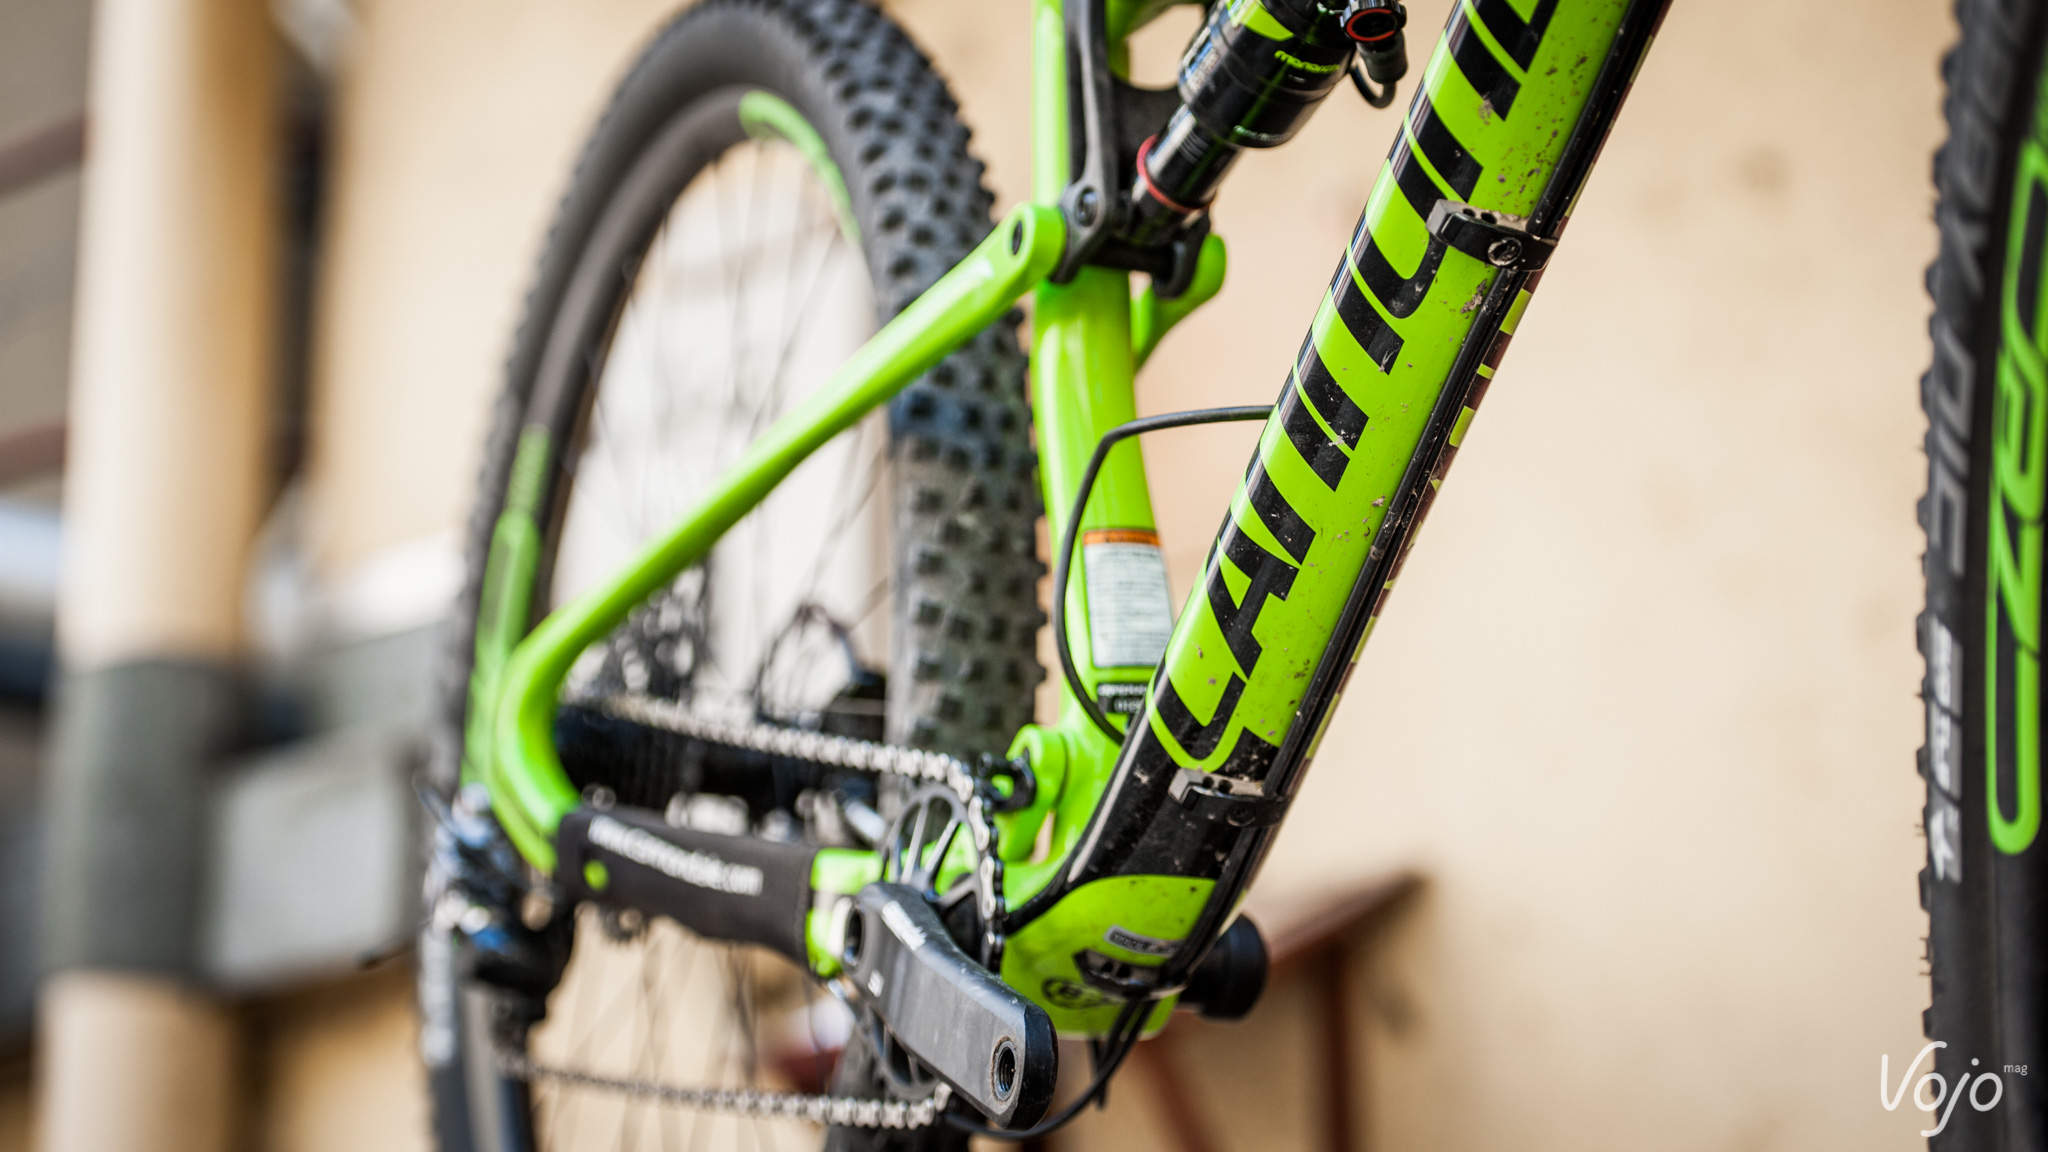 Cannondale-habit-2016-Hi-mod-1-vojo-paul-humbert-first-ride-21